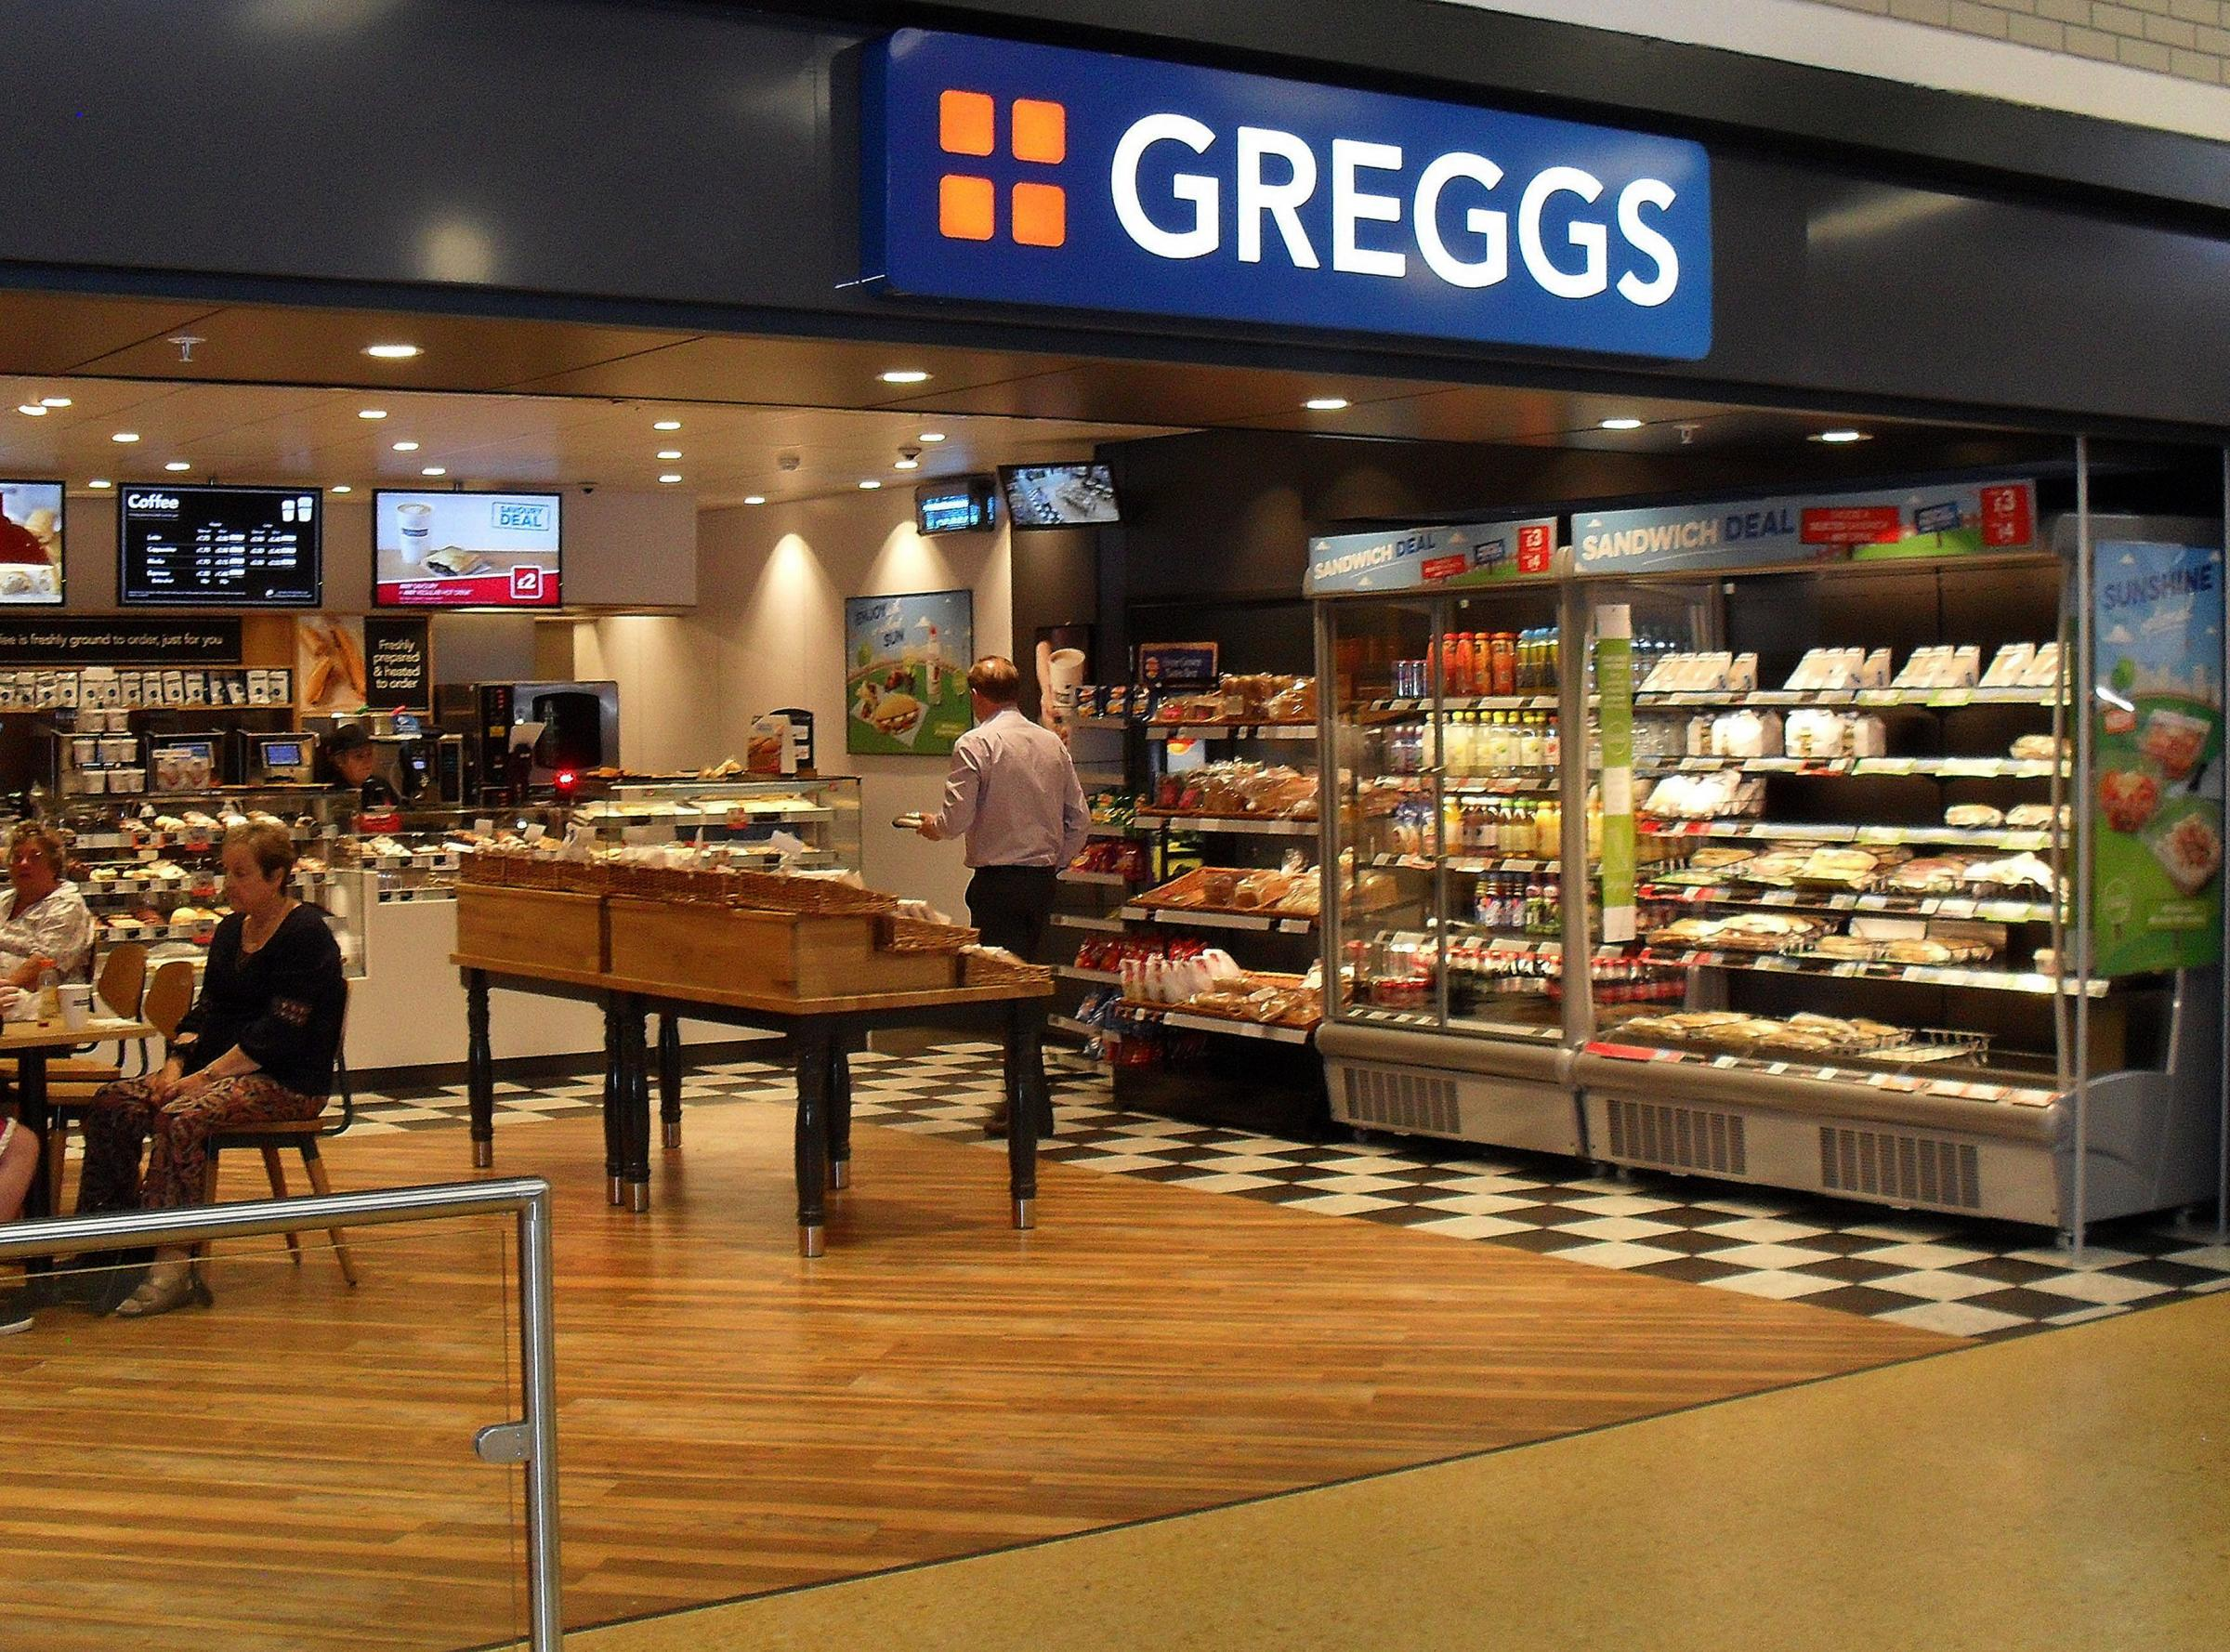 Undated handout file photo issued by Greggs of one of their stores, as the high street chain said it plans to ramp up shop openings over the year ahead after a solid performance in 2017 despite seeing sales growth slow over the Christmas season. PRESS ASS